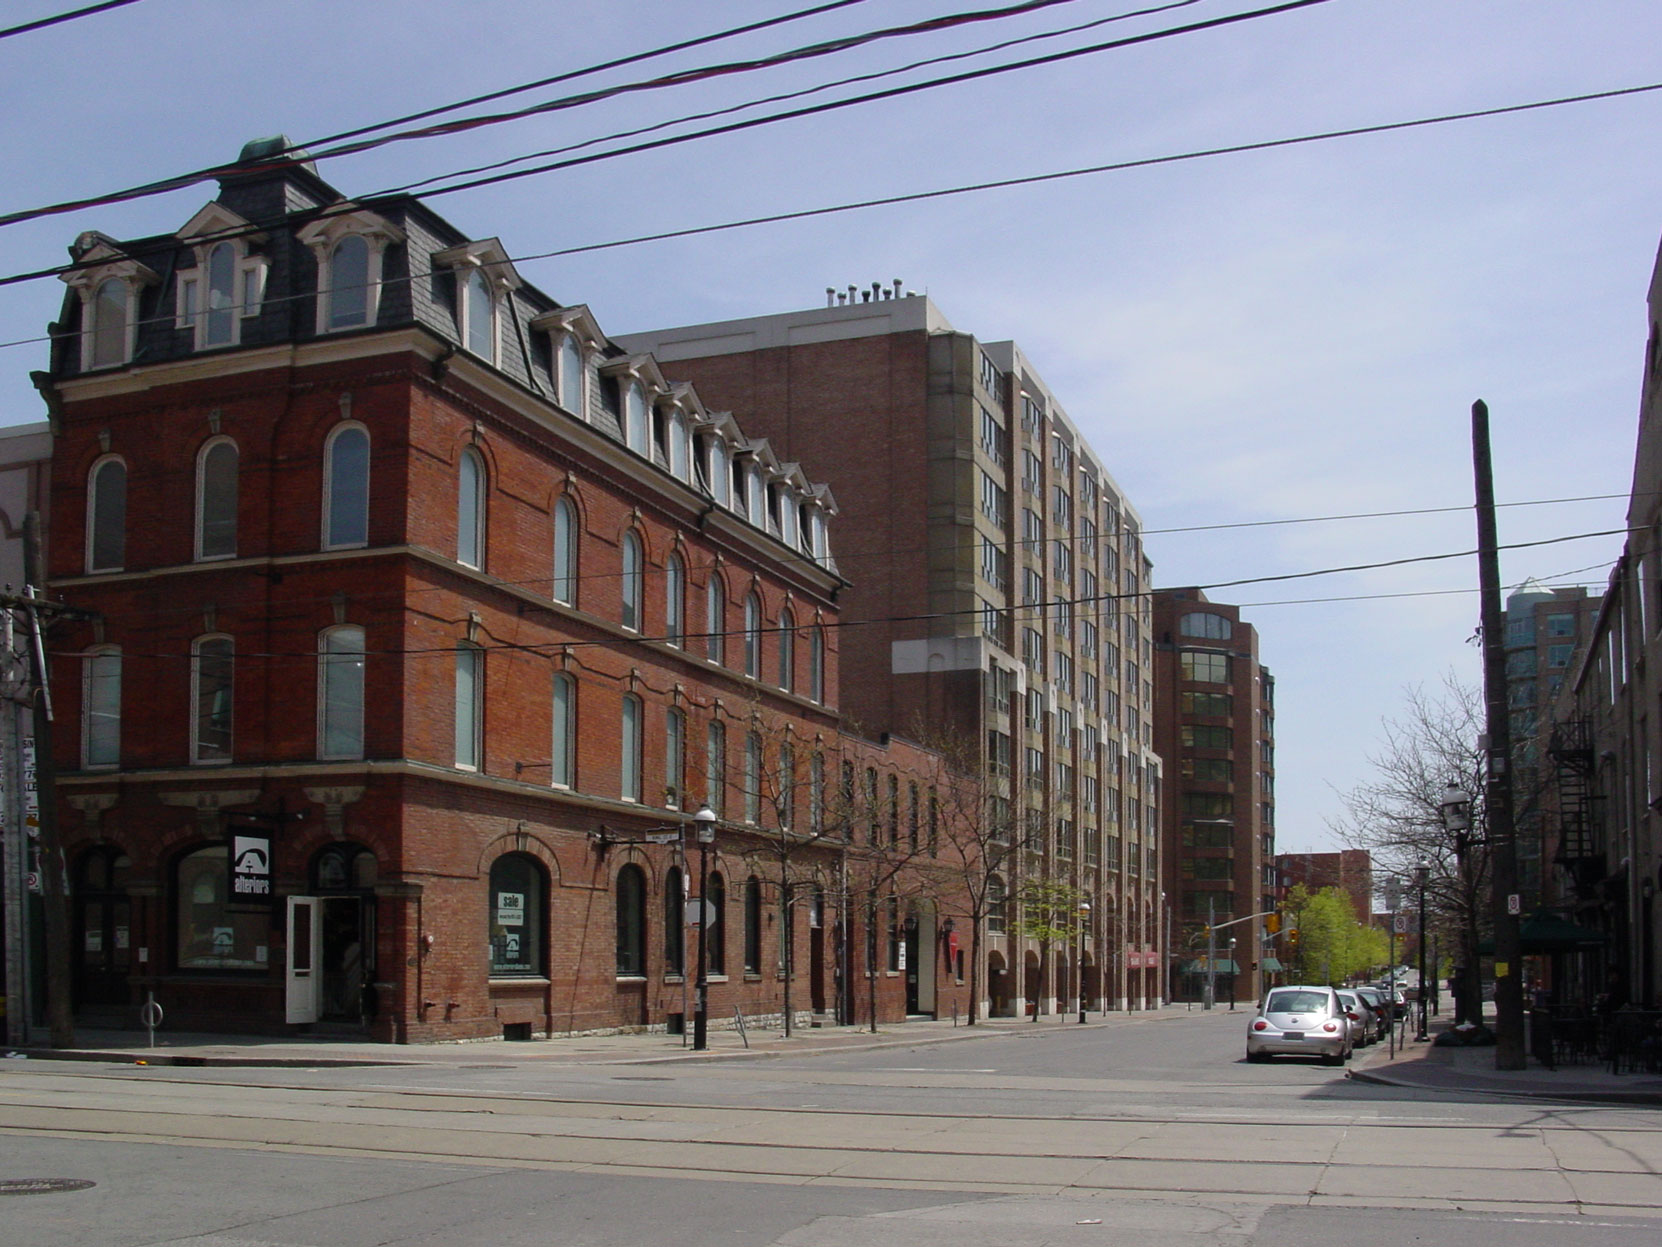 The south east corner of George Street and King Street East in downtown Toronto. This block of George Street was Jennie Butchart's childhood home. (Photo by Author)